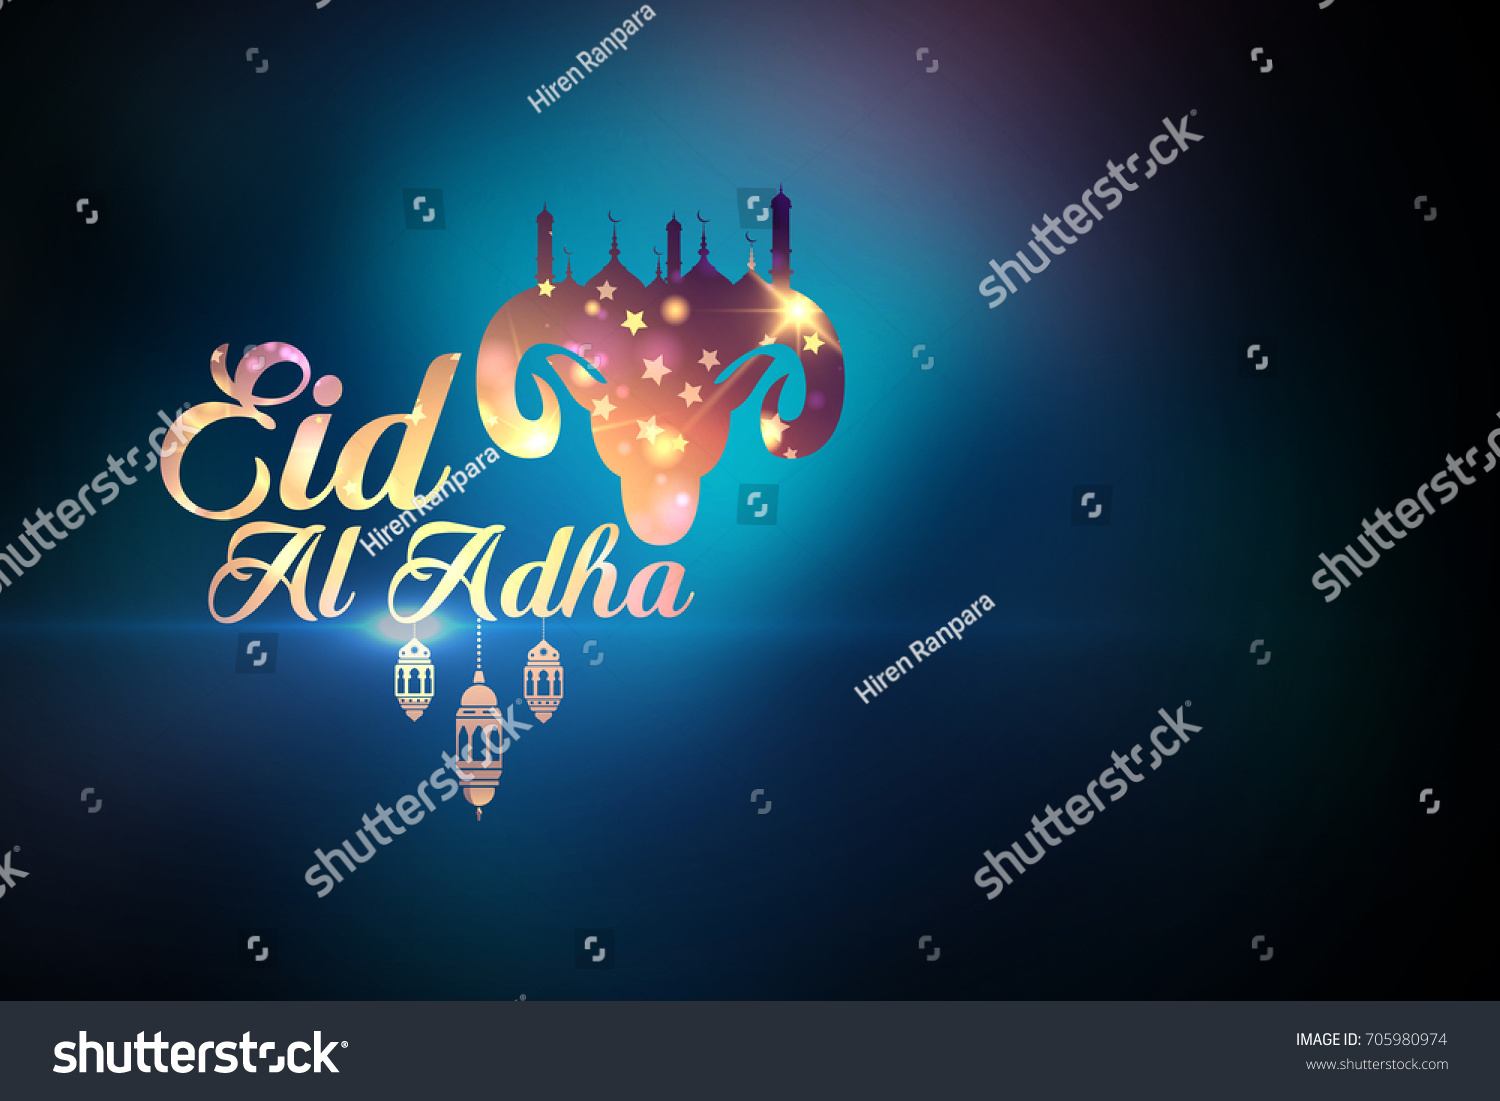 Eid Al Adha Greetings Stock Illustration 705980974 Shutterstock